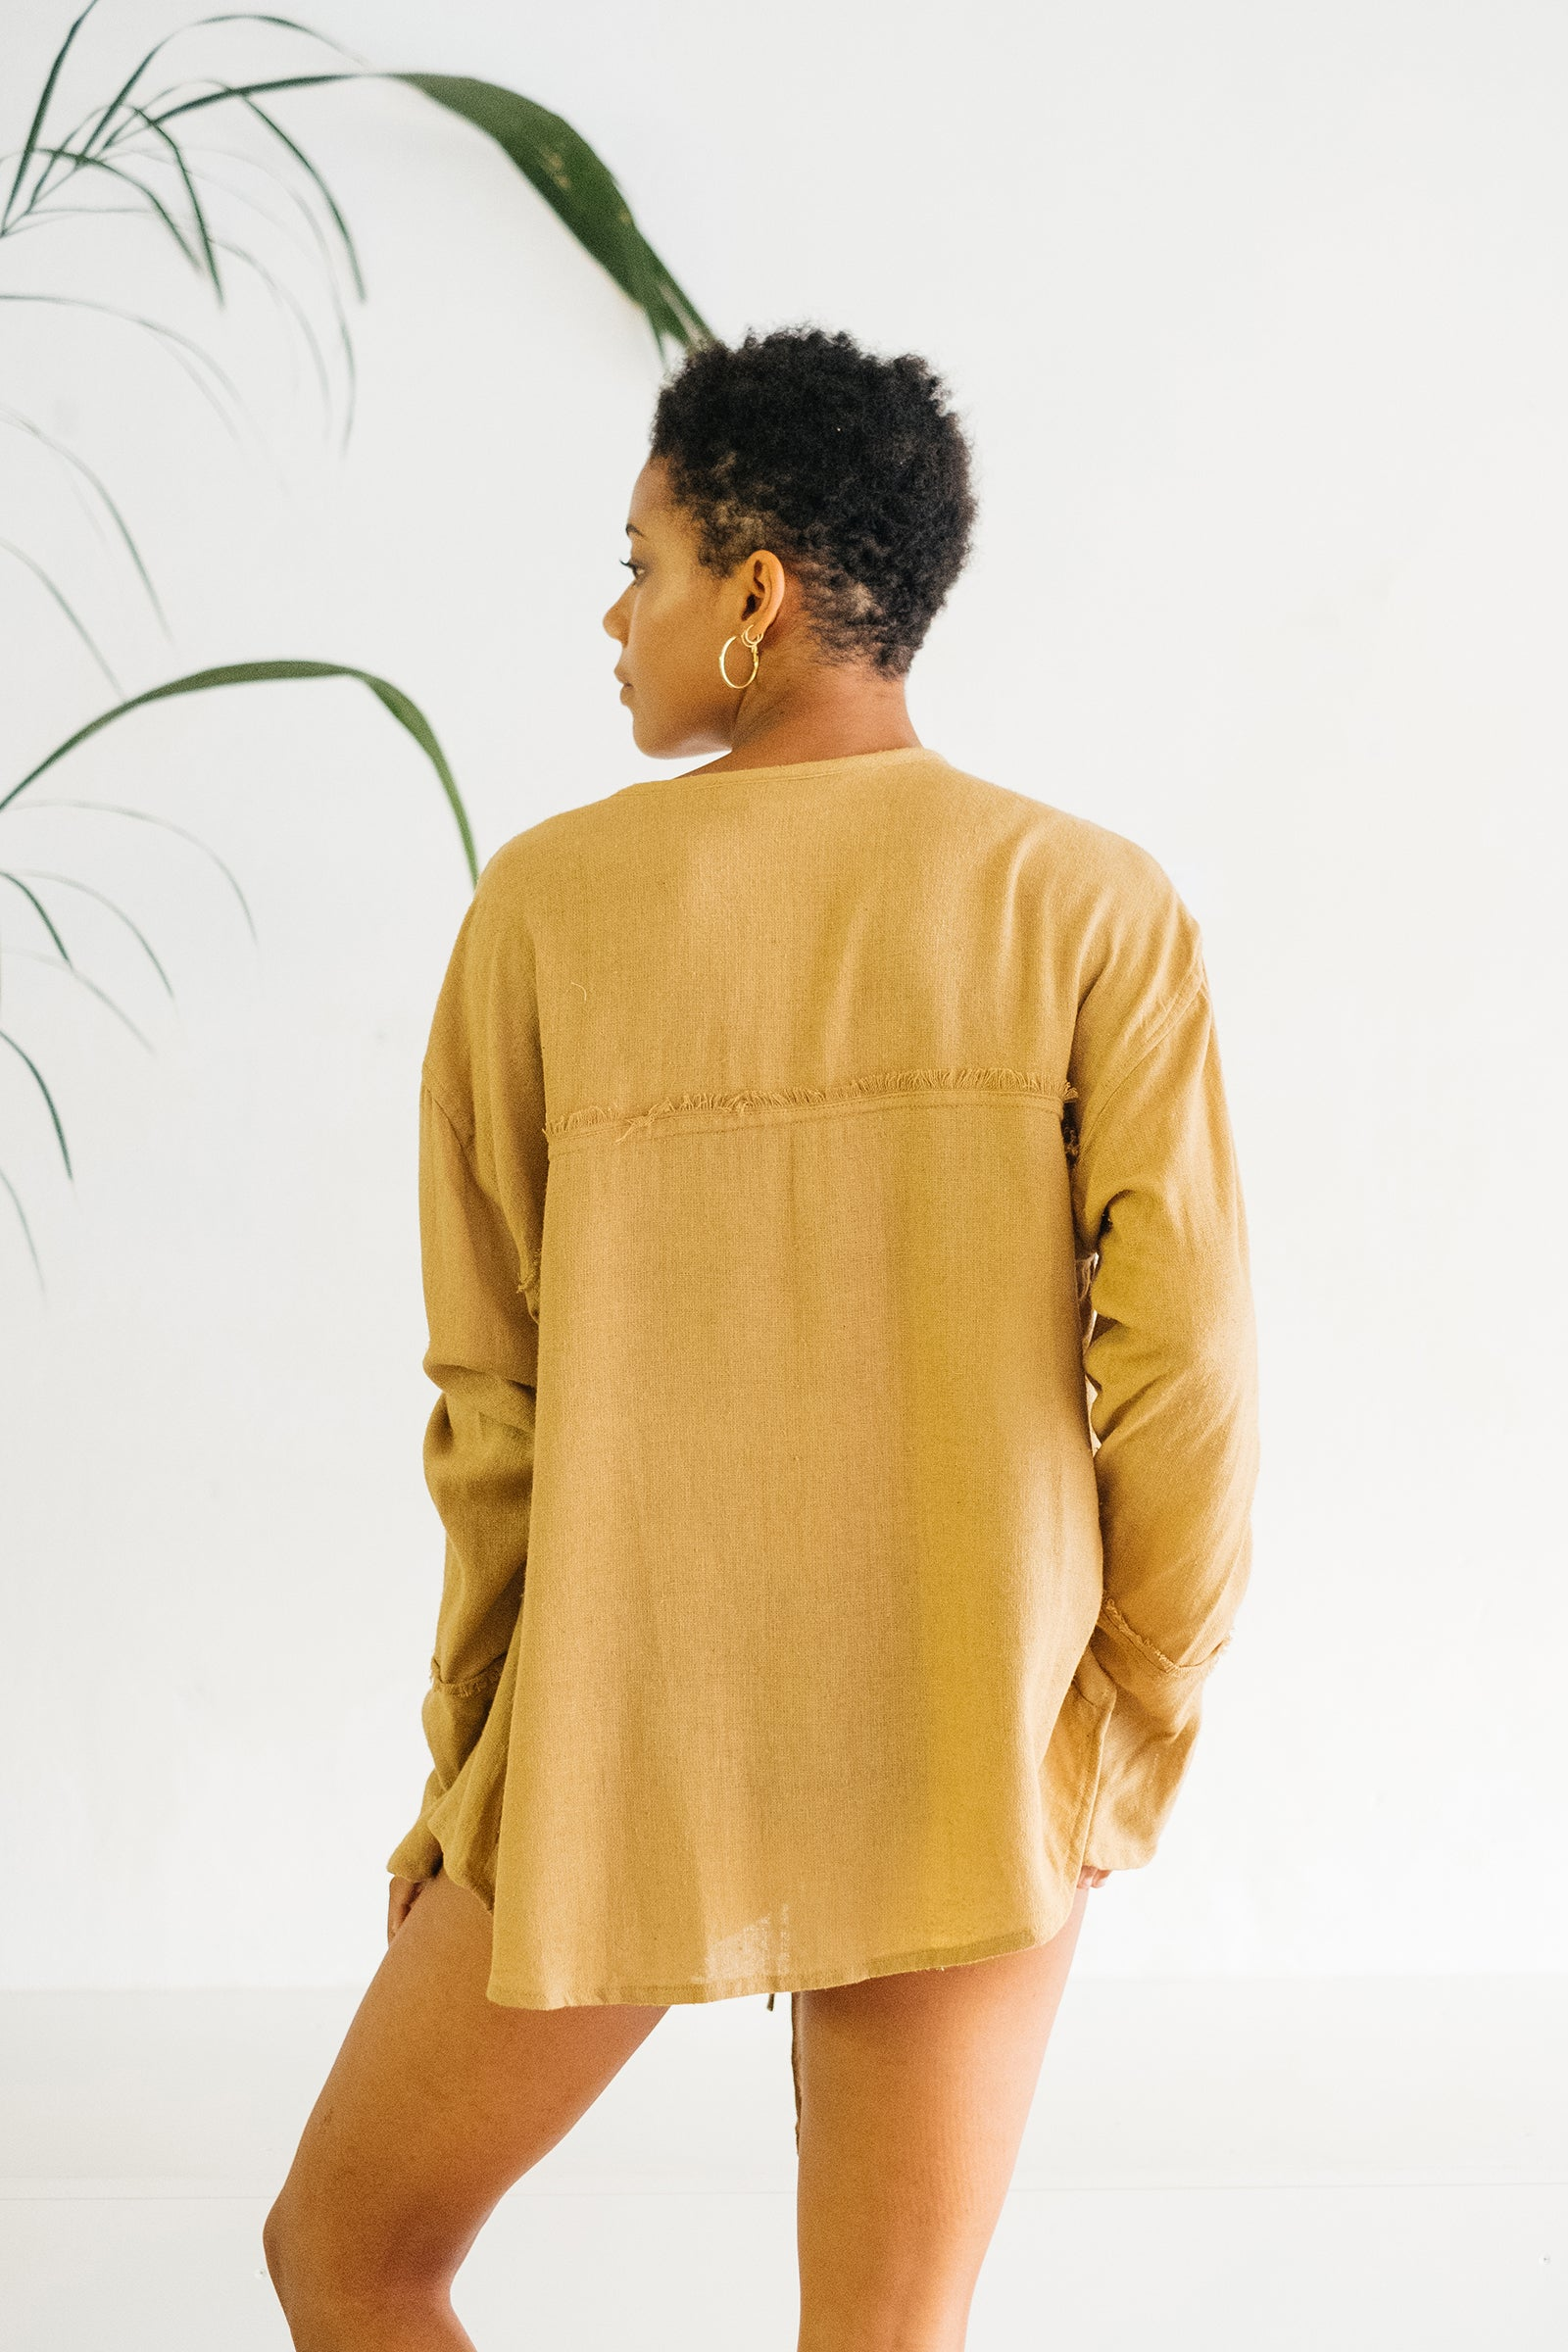 The Silk co. | Tigerlily Blouse | Sustainable Raw Silk Clothing - The Silk Co Byron Bay